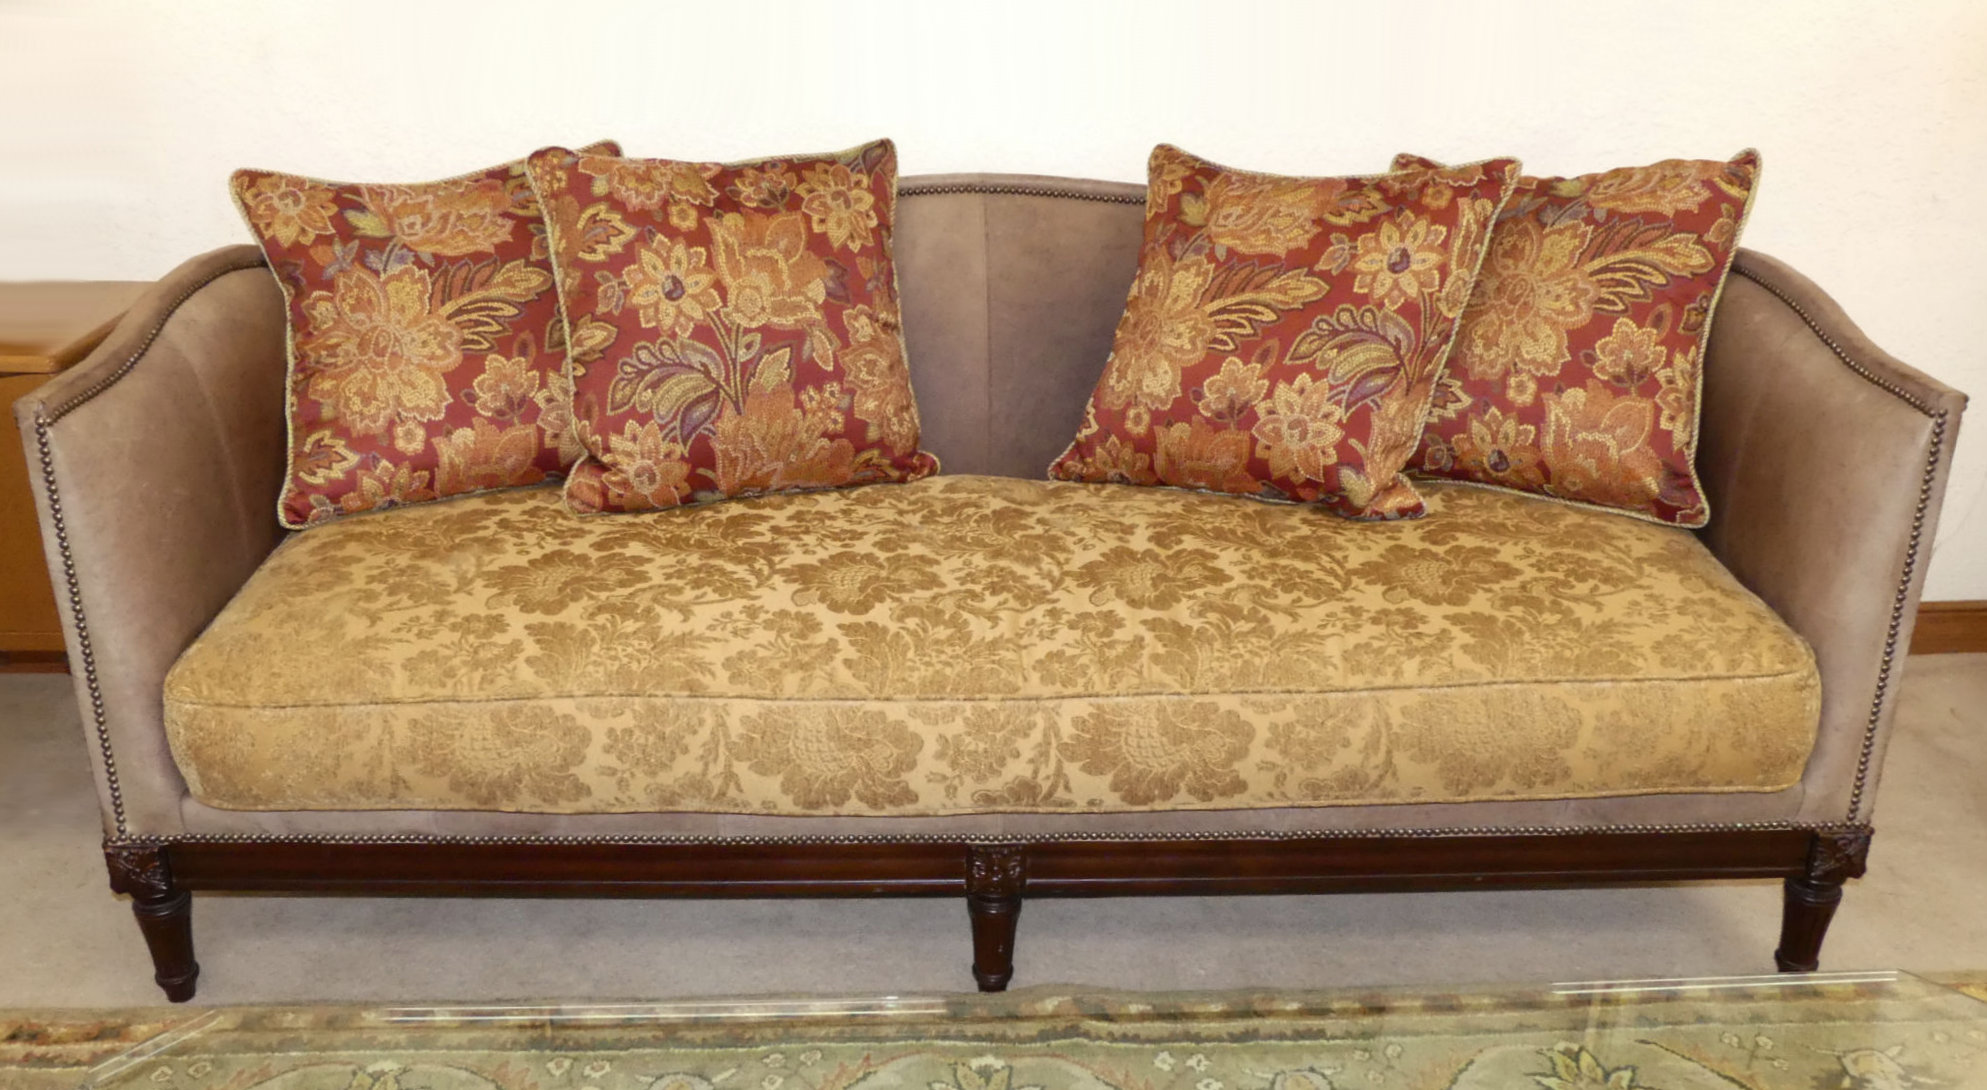 SOLD Lillian August Leather Sofa with Soft Damask Sea